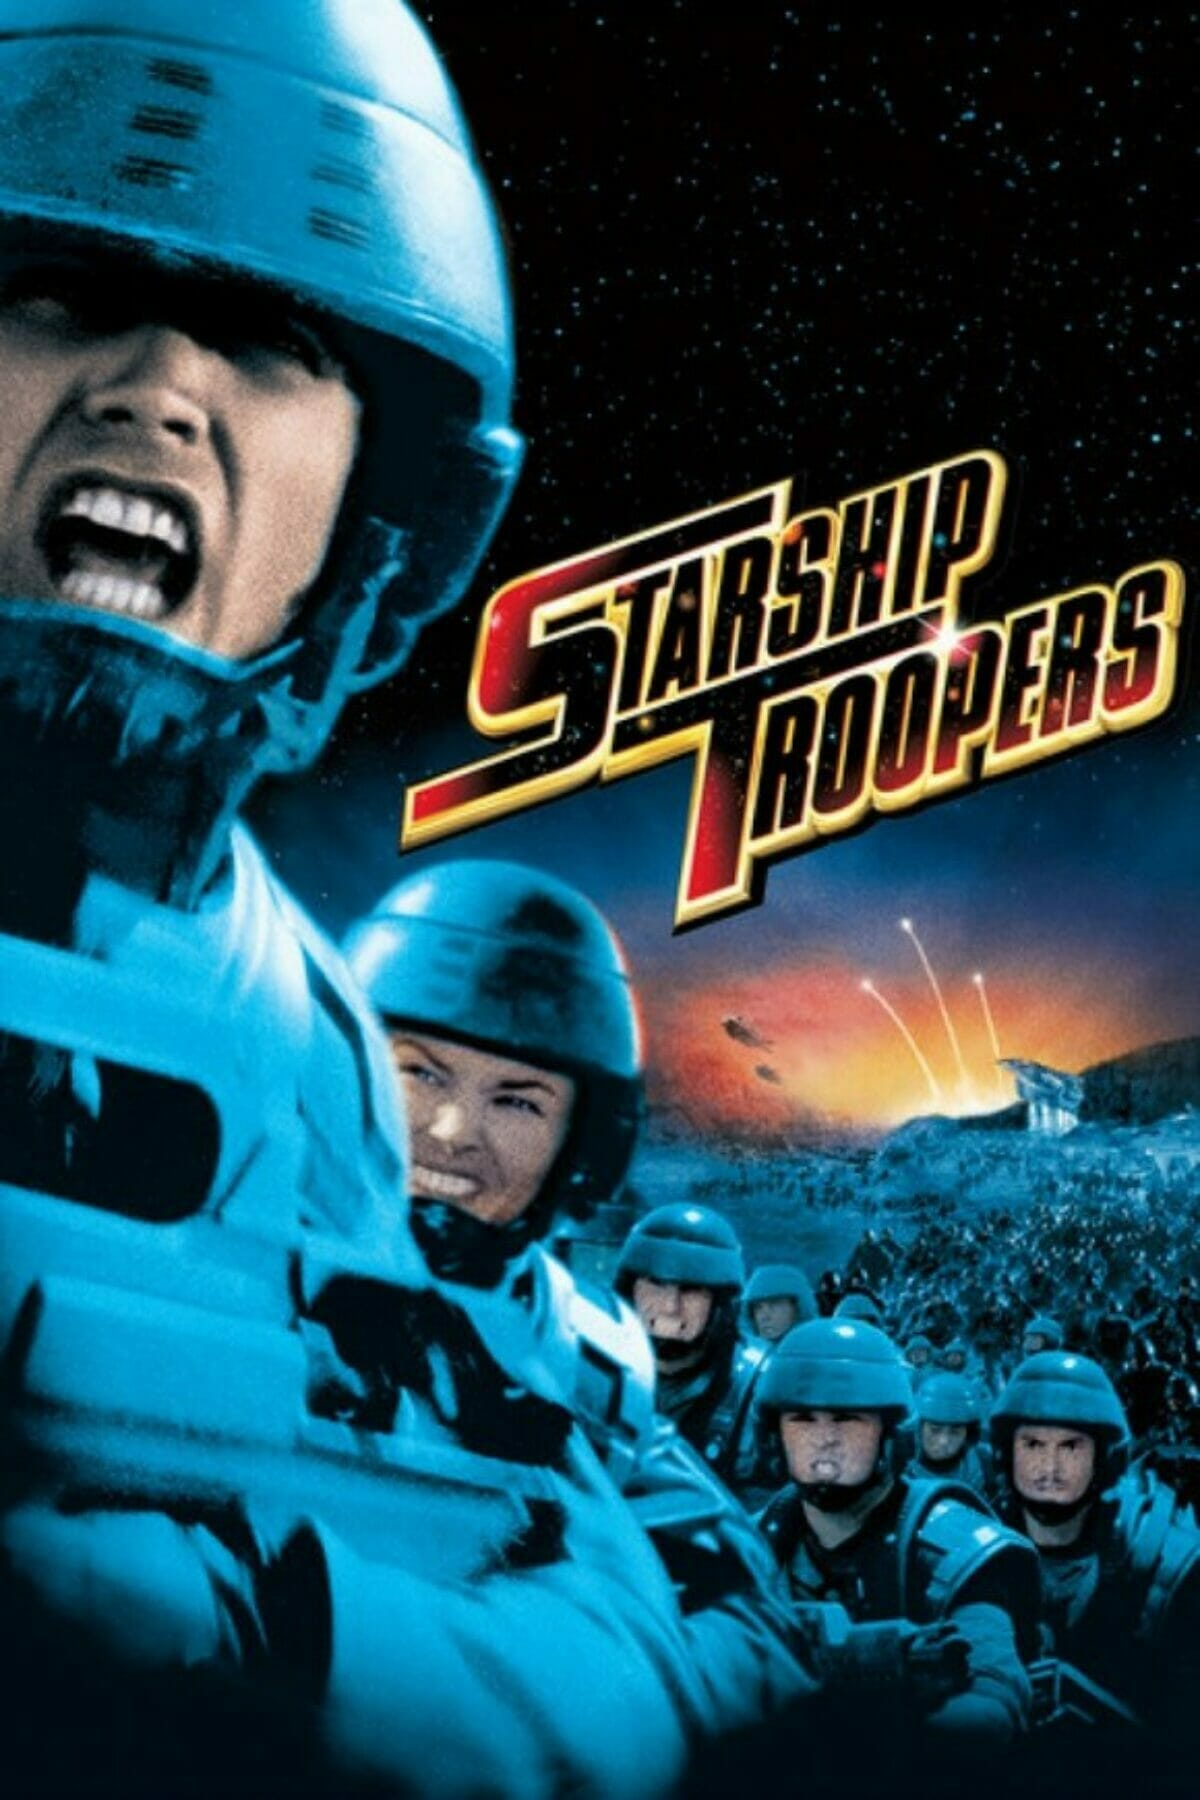 starship-troopers-poster-big